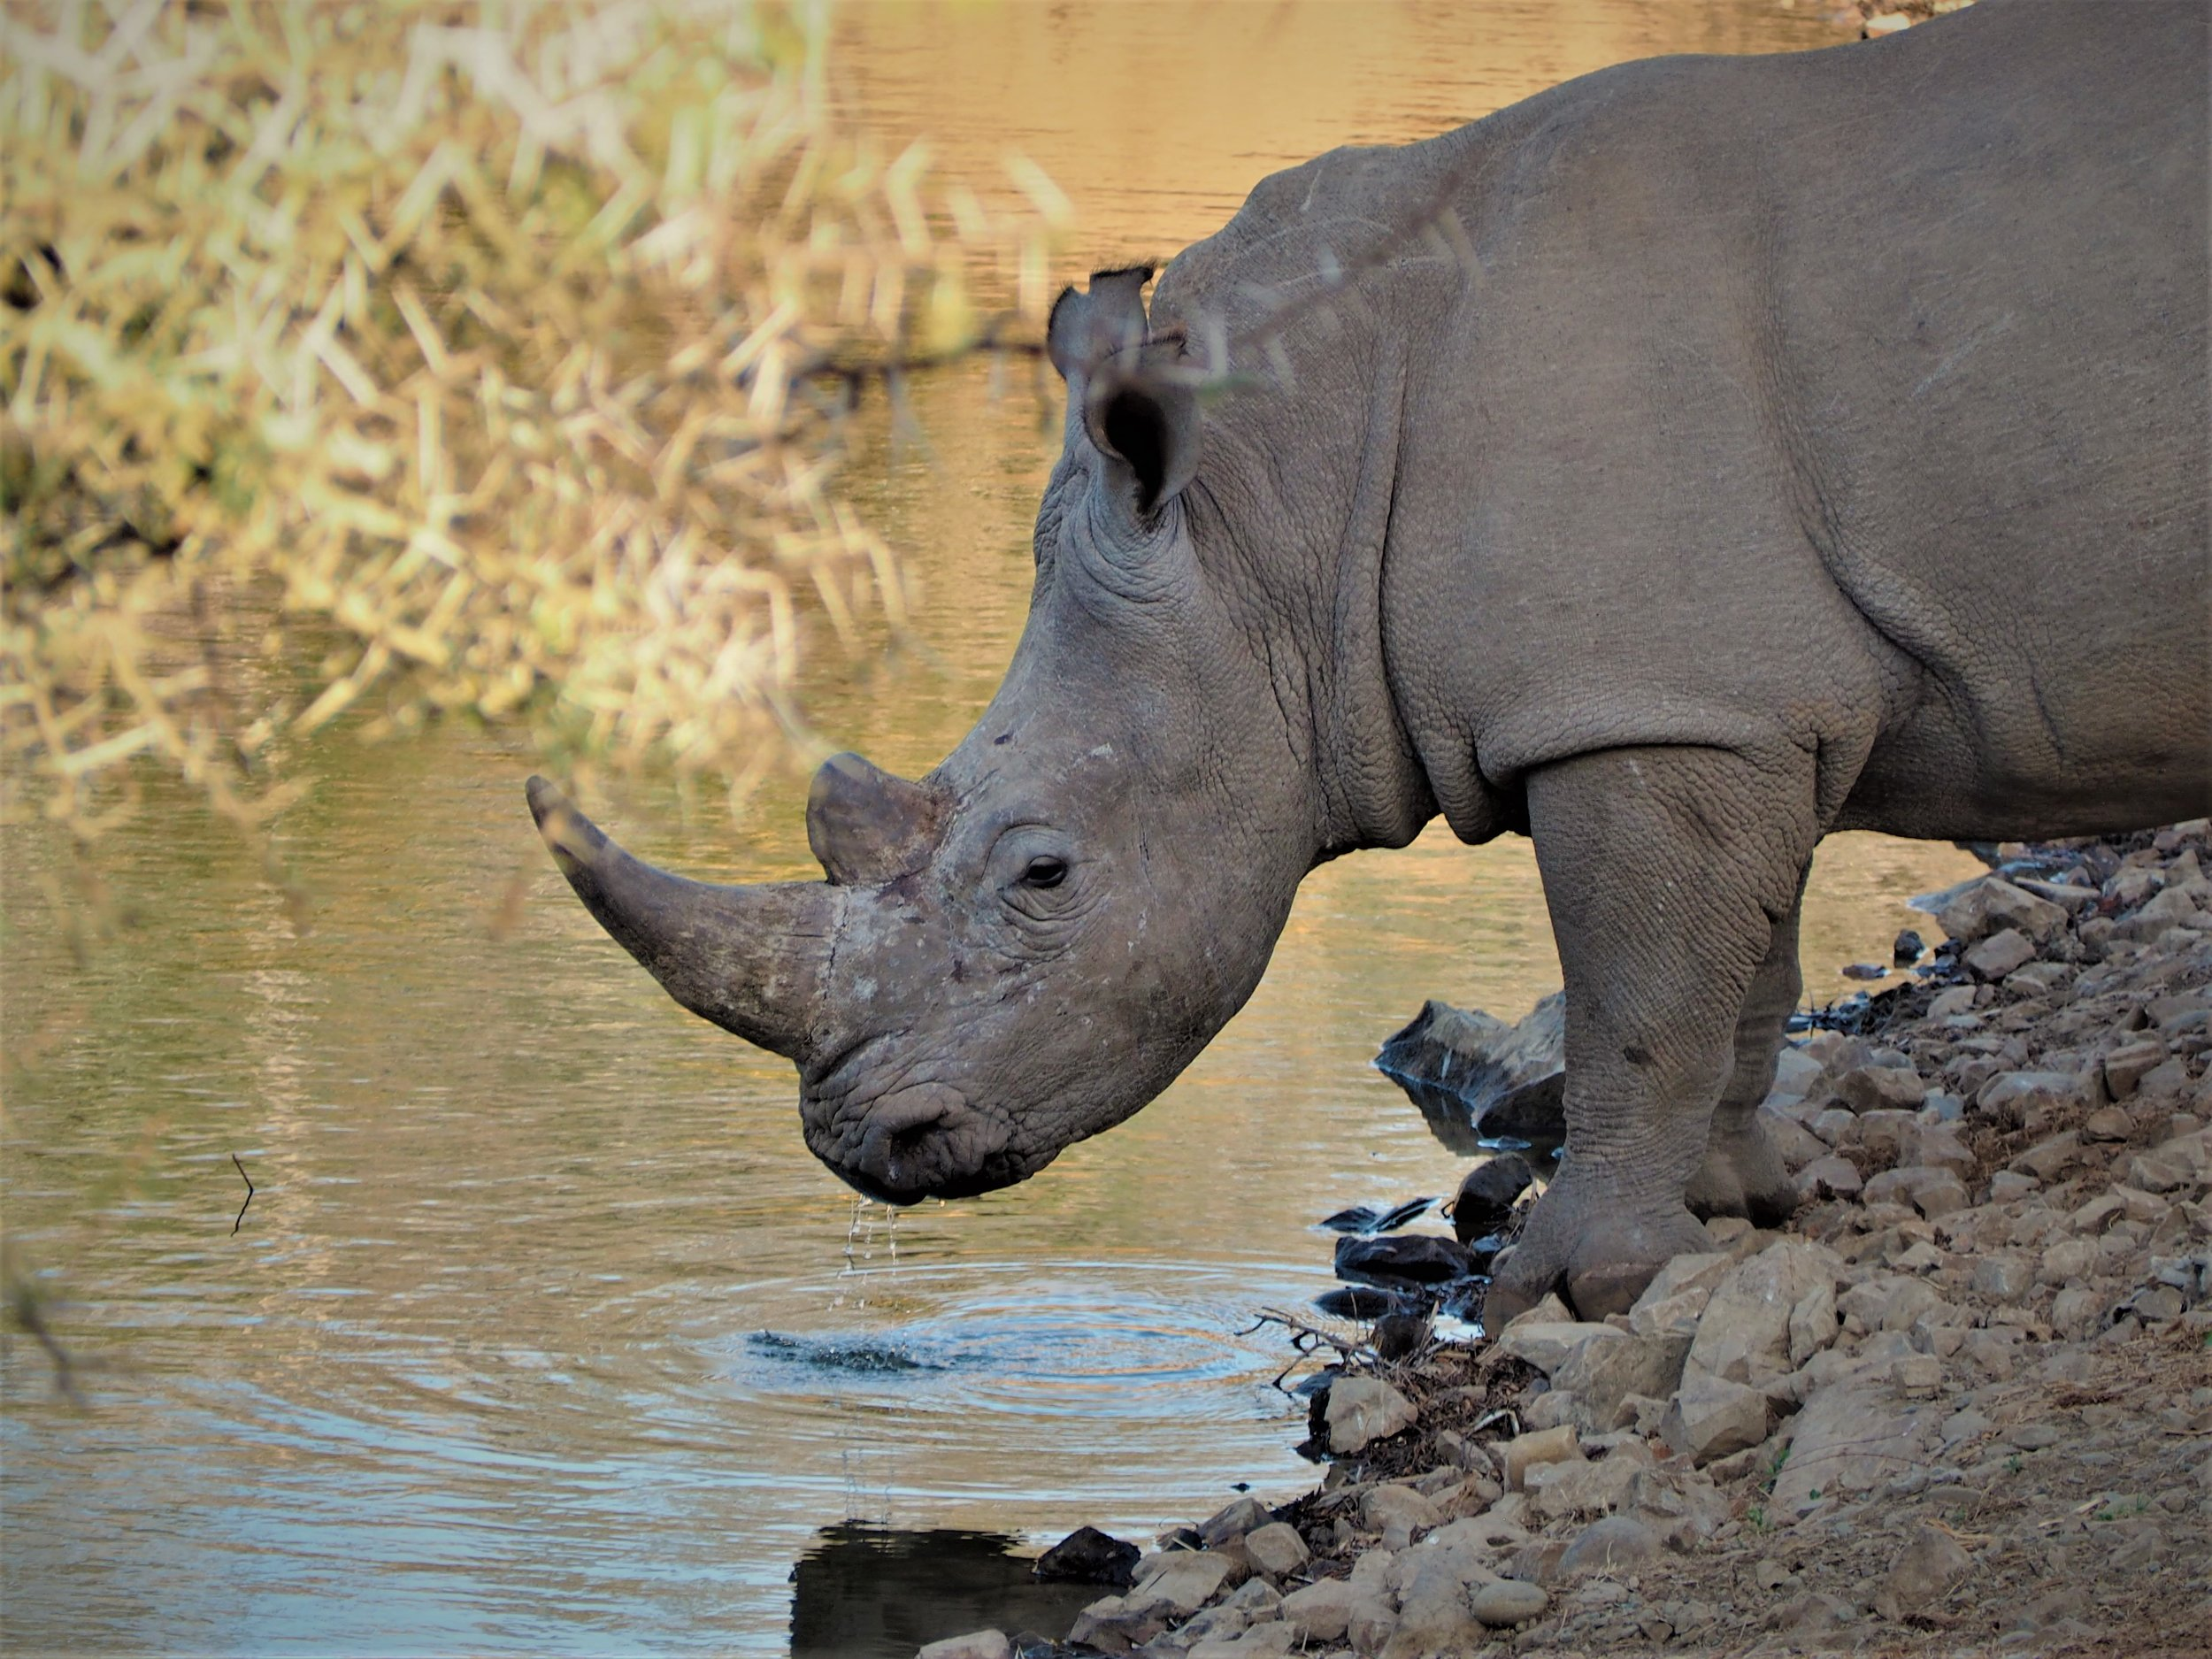 South Africa Southern Conservation & Community Experience